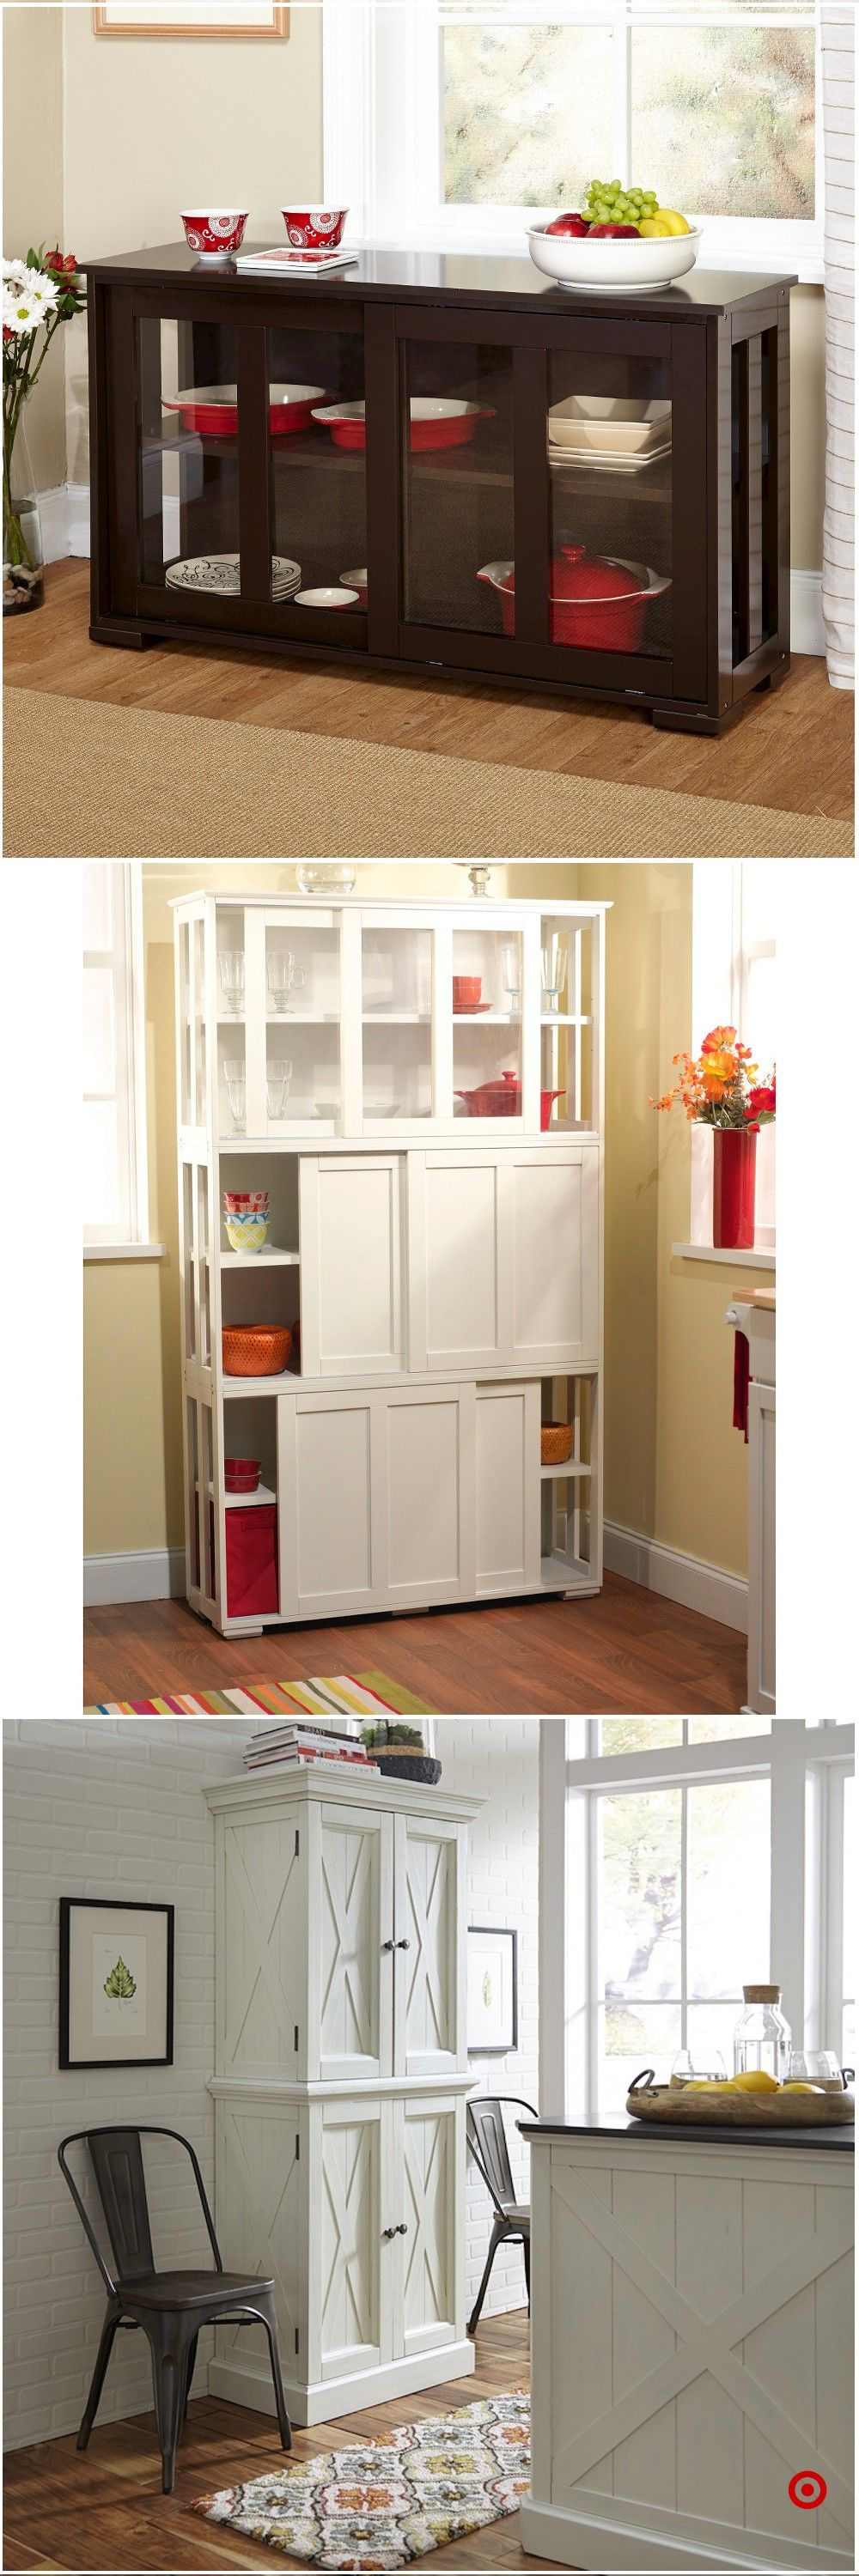 Shop Target For Kitchen Storage Pantry You Will Love At Great Low Prices Free Shipping On Orders Of 35 Lake House Kitchen Home Decor Kitchen Kitchen Storage